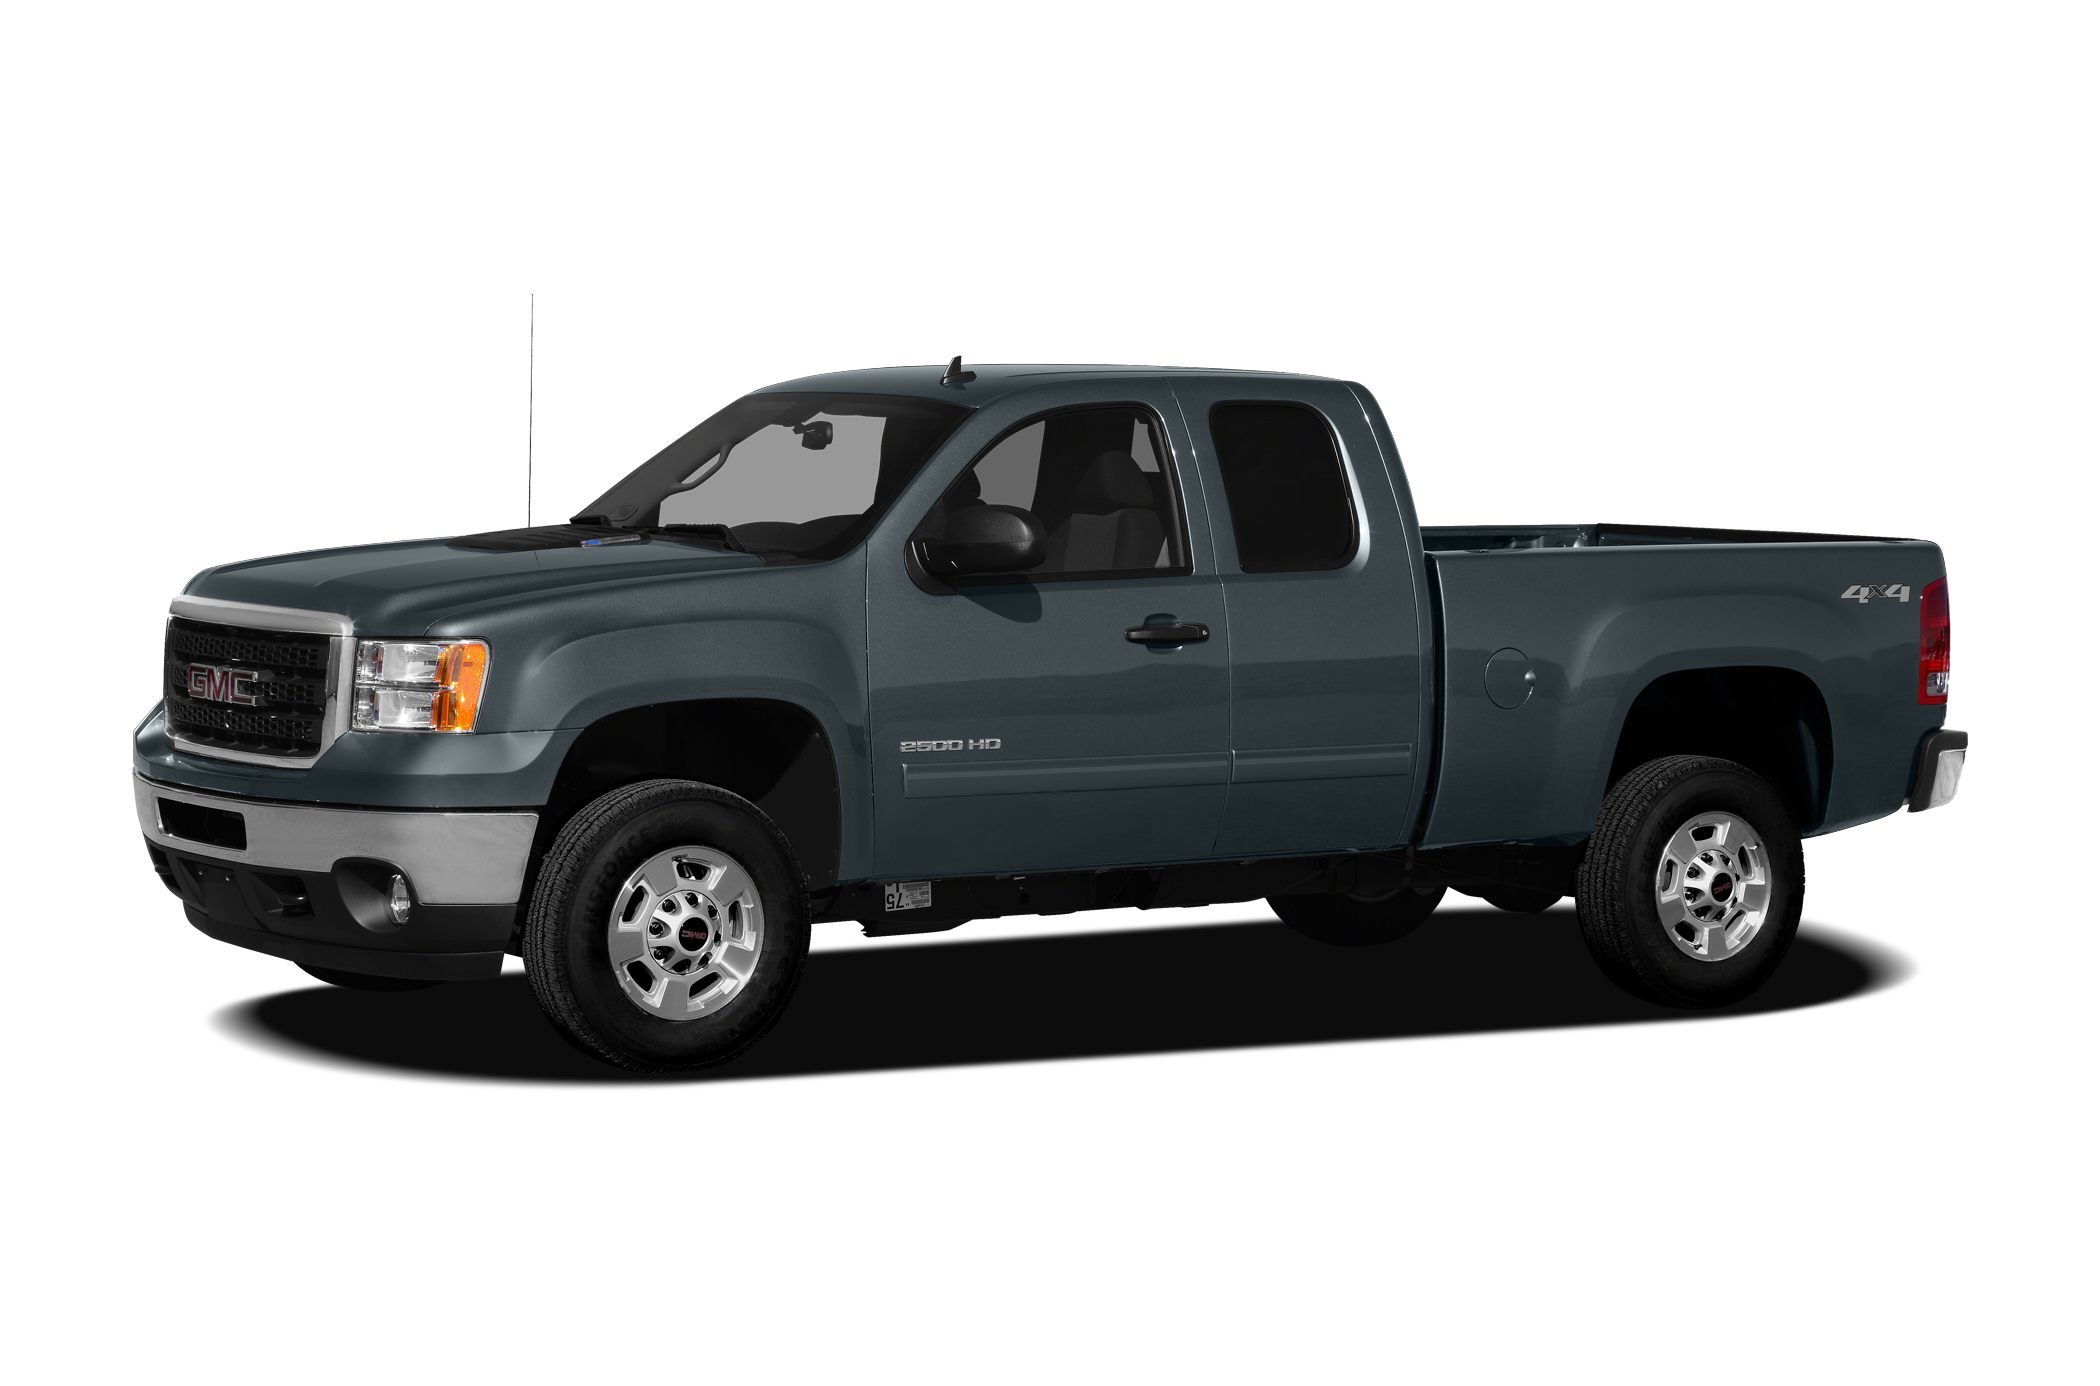 2012 GMC Sierra 2500 SLT Crew Cab Pickup for sale in San Antonio for $32,987 with 70,000 miles